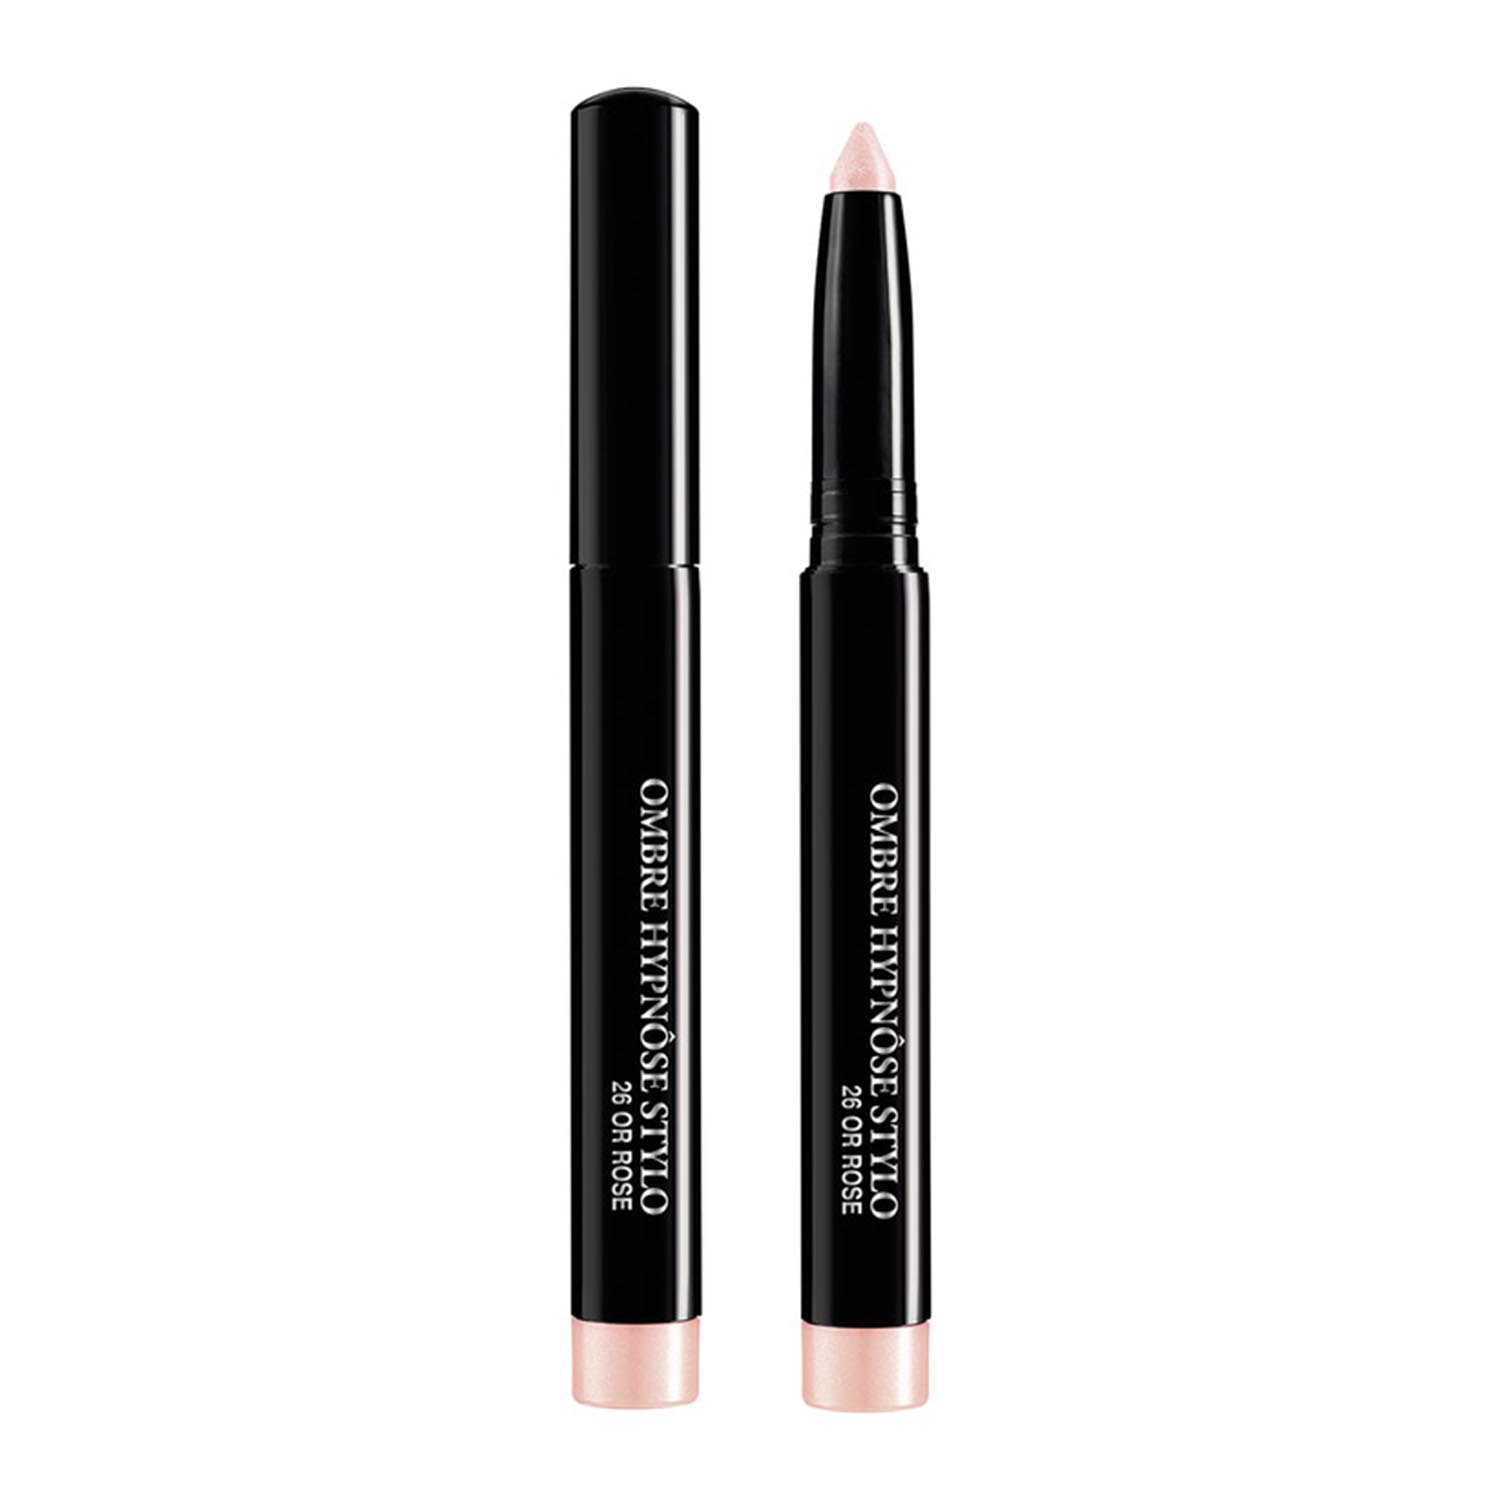 Lancome ombre hypnose stylo 26 or rose